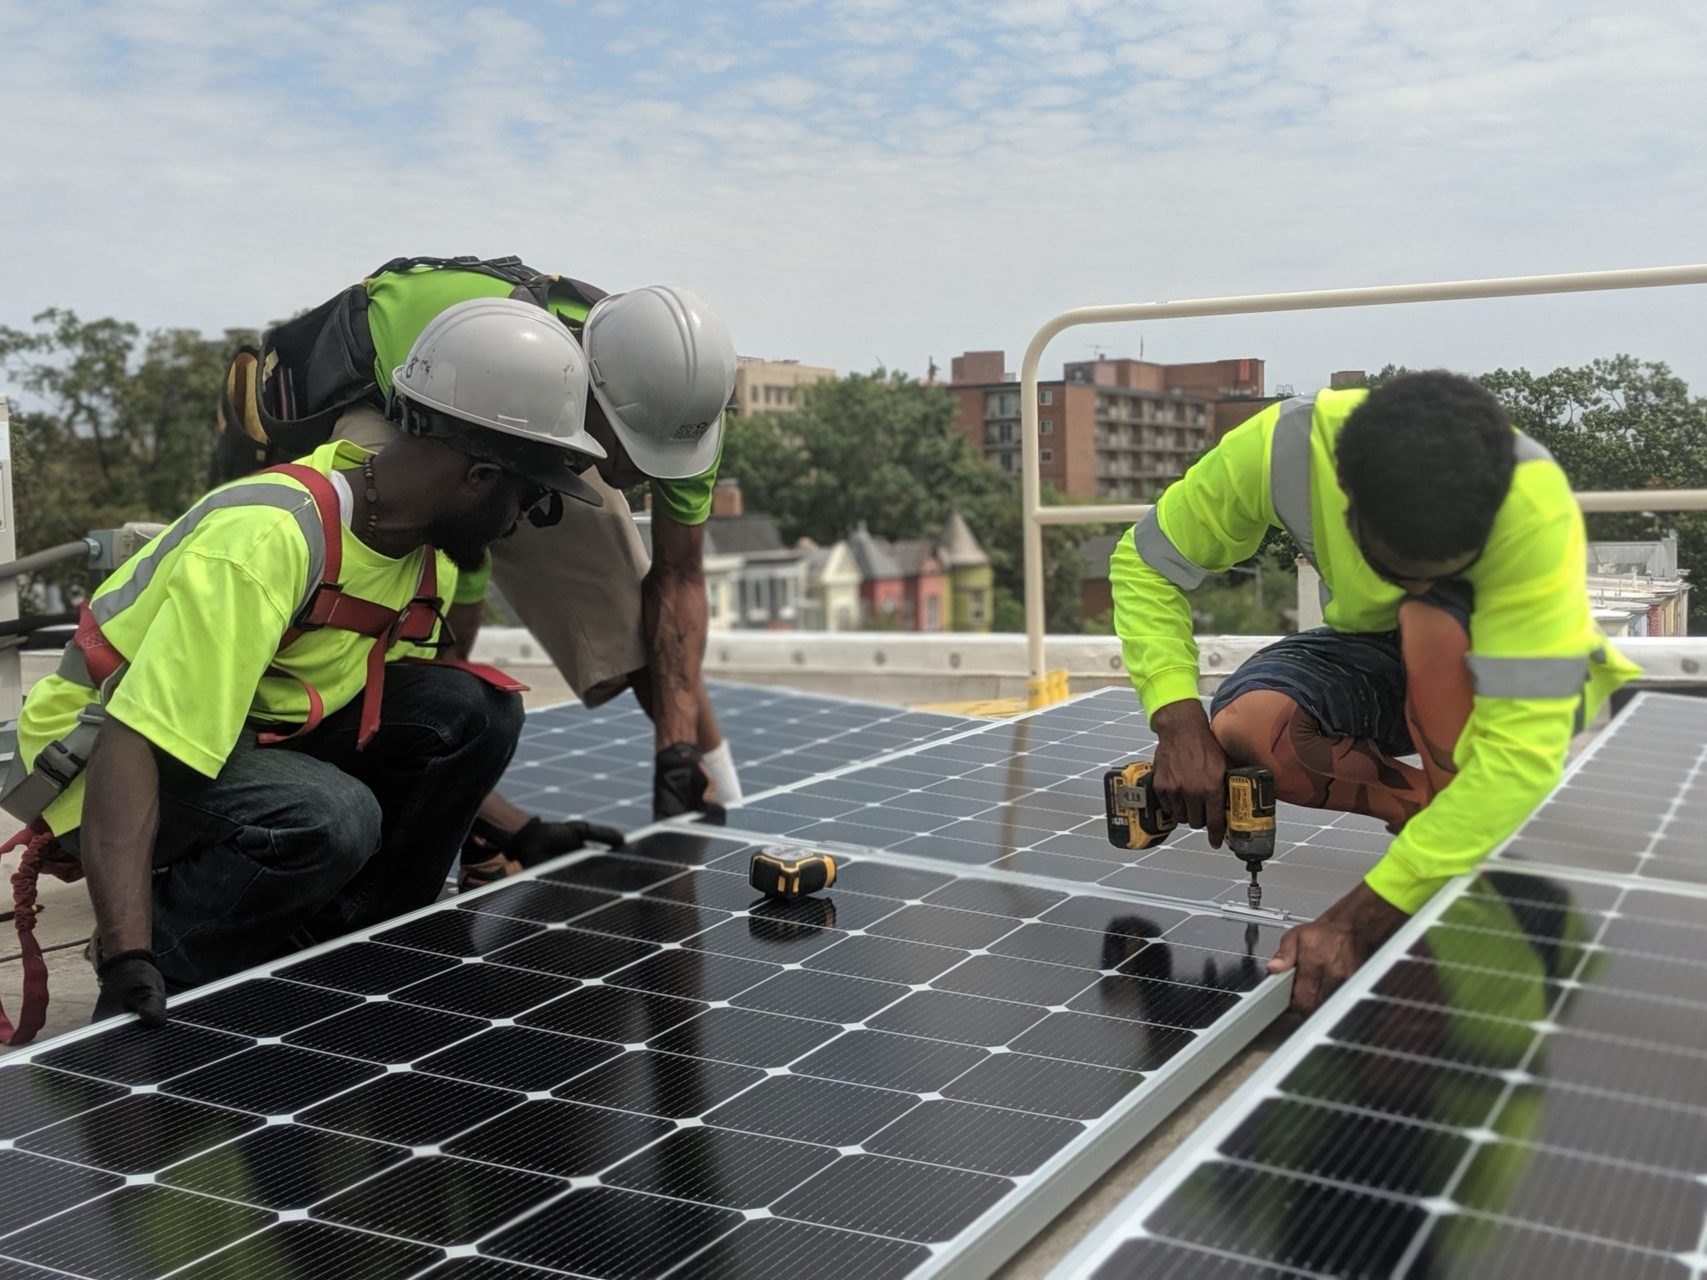 Three people standing on a rooftop around solar panels. Two are wearing construction hats to the left and the person on the right is holding a drill. They are all wearing neon safety shirts. The backdrop has trees, houses, buildings, and the sky is partially cloudy but parts of it are bright.